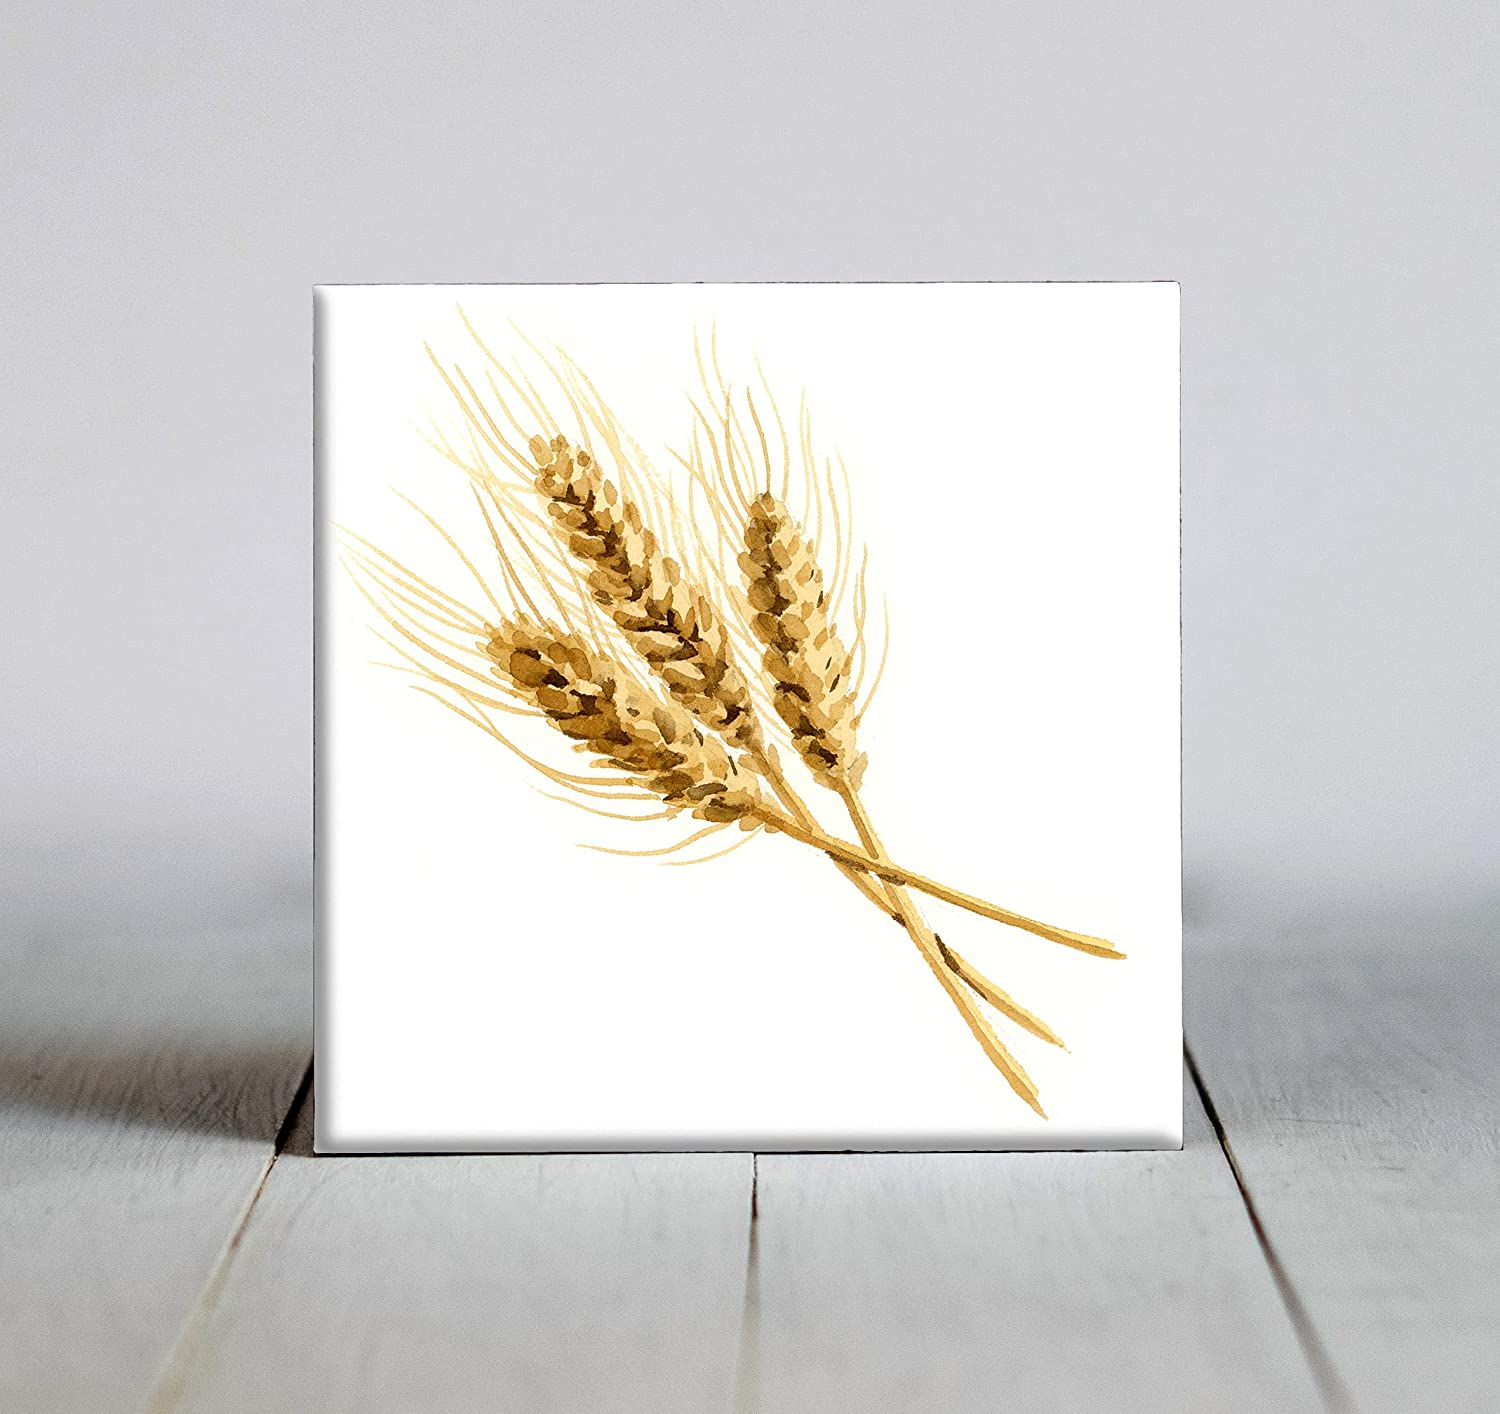 Wheat Watercolor Art Decorative Clearance SALE! Limited time! 4.25 Tile X Fort Worth Mall Framed